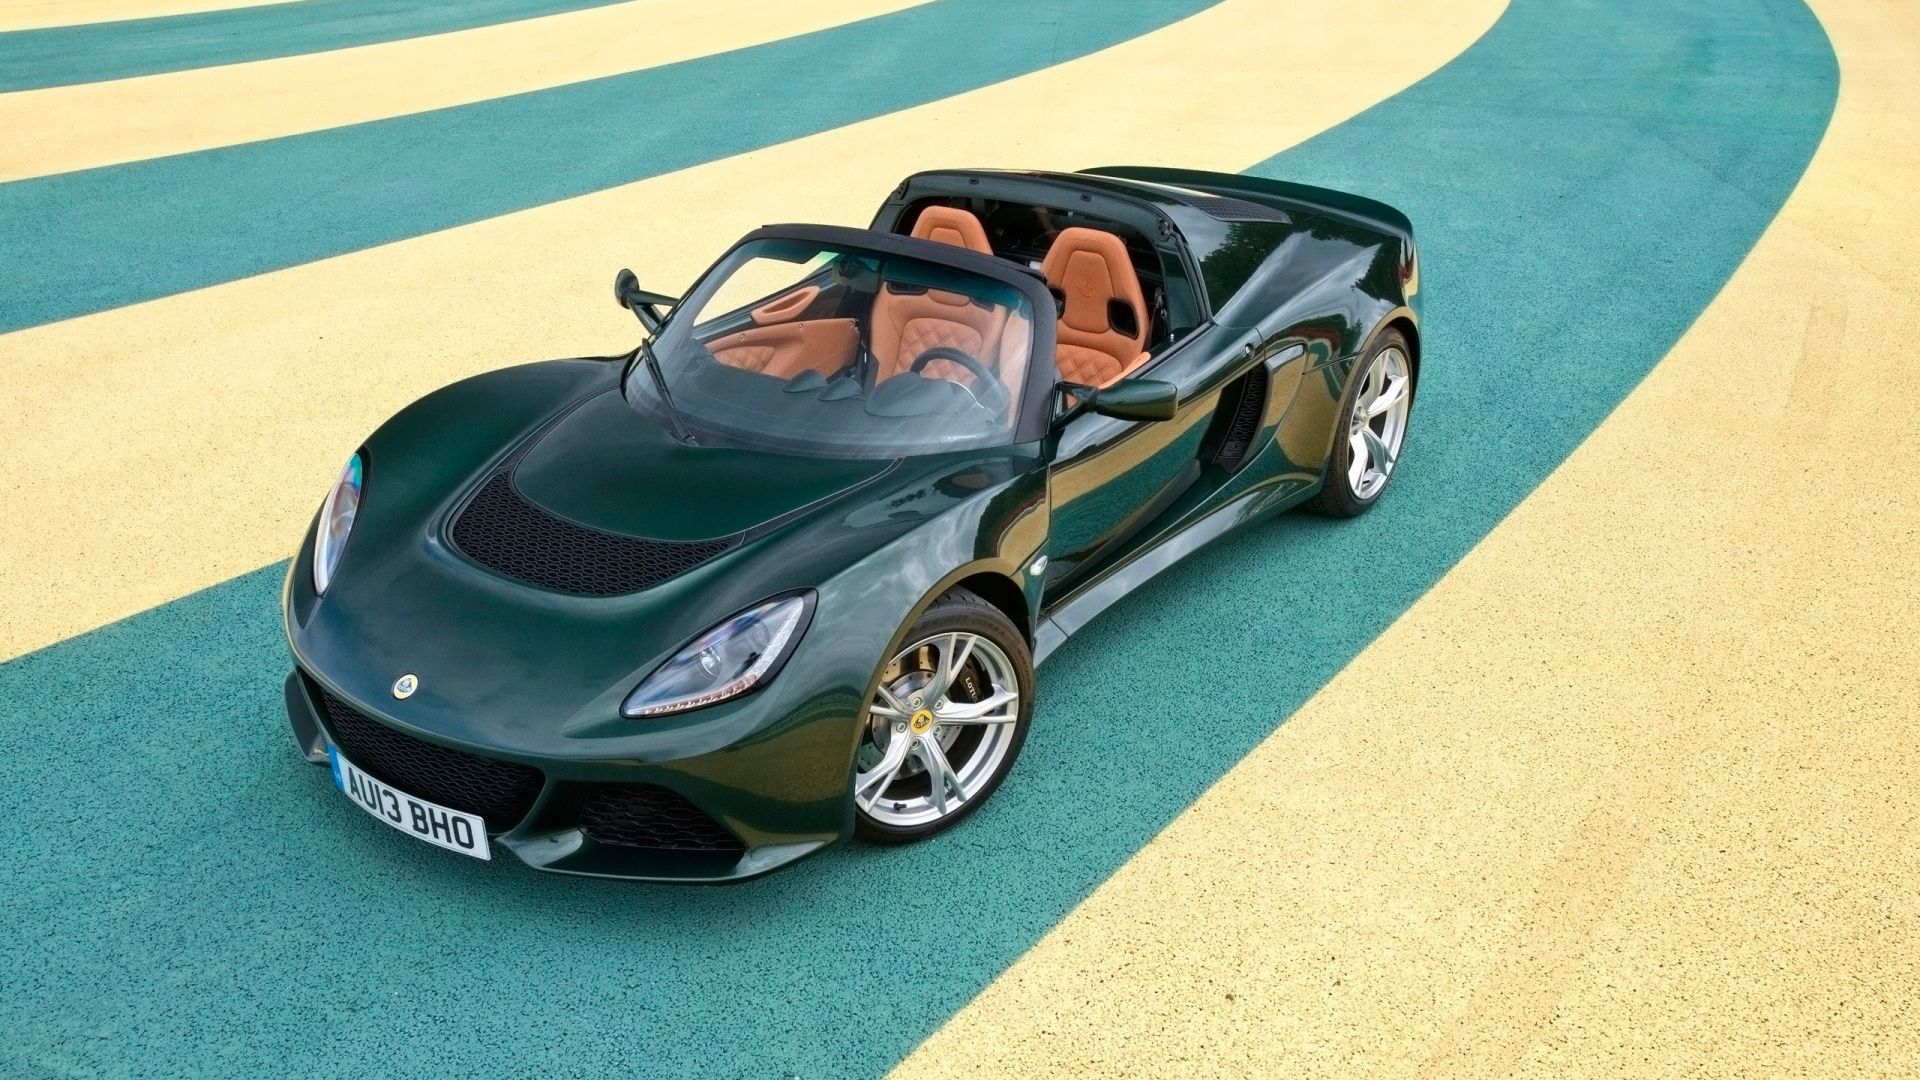 Black lotus exige s roadster | Lotus wallpapers | Pinterest | Lotus ...